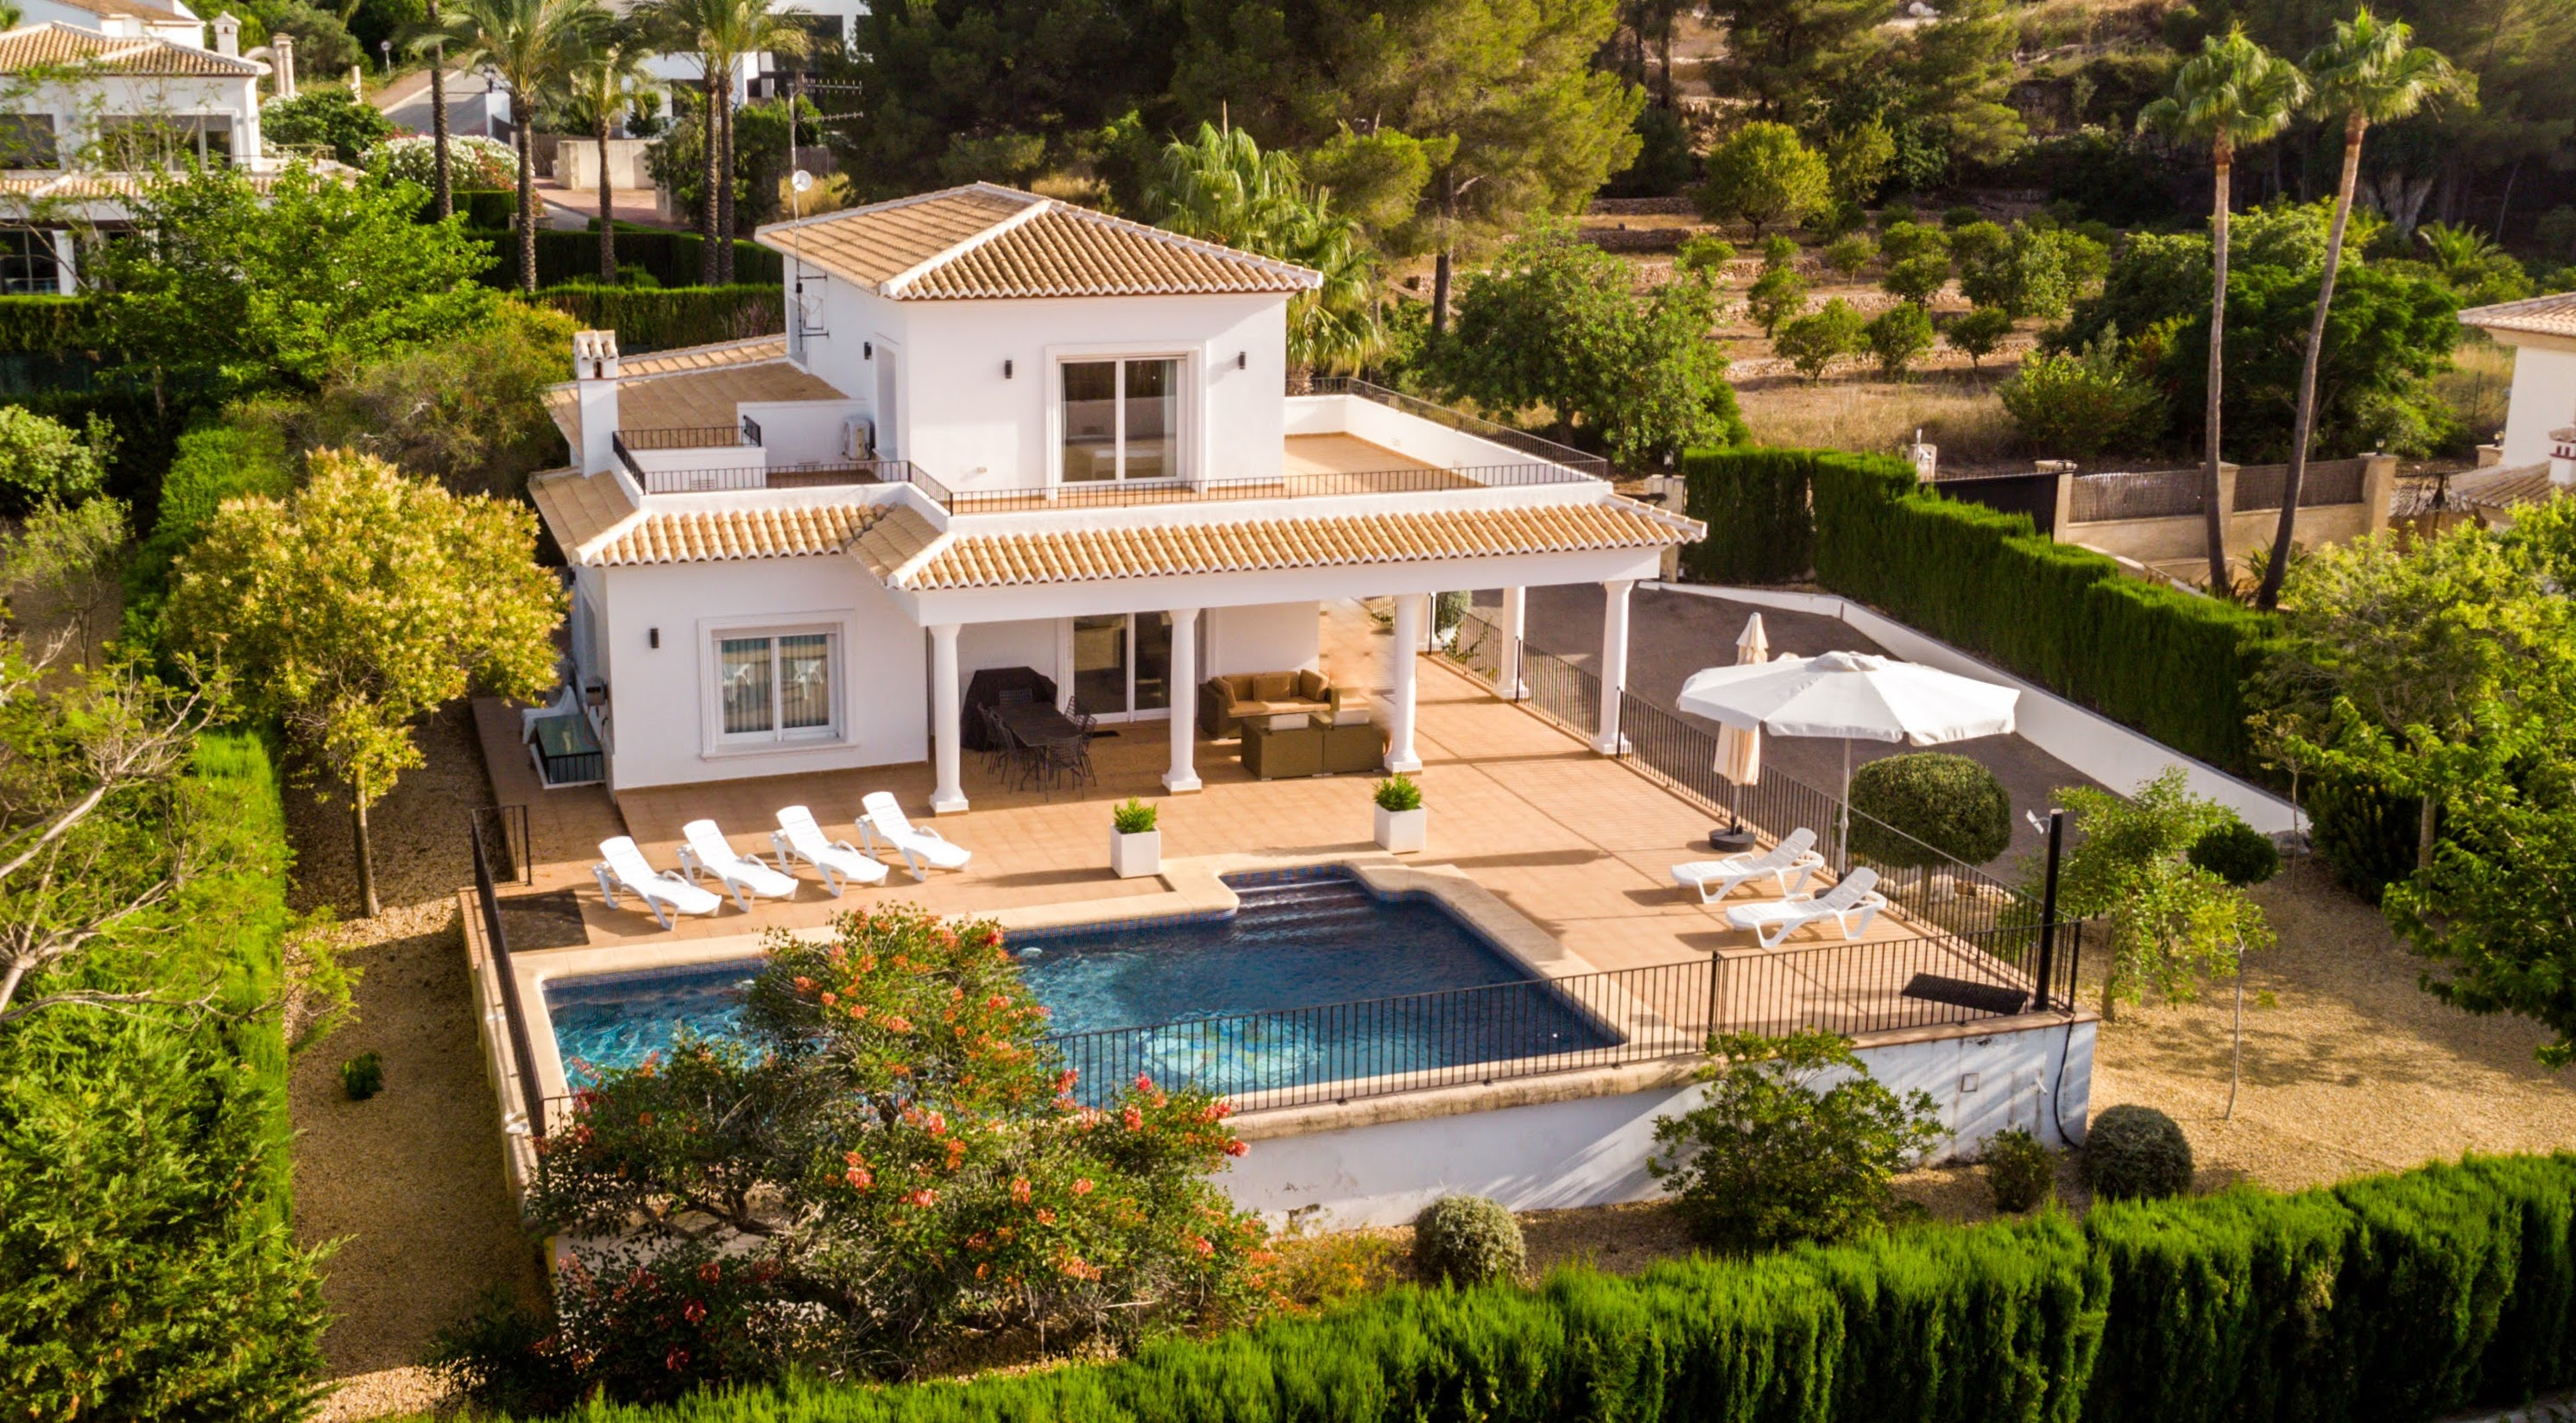 The Process of Buying a Property in Spain